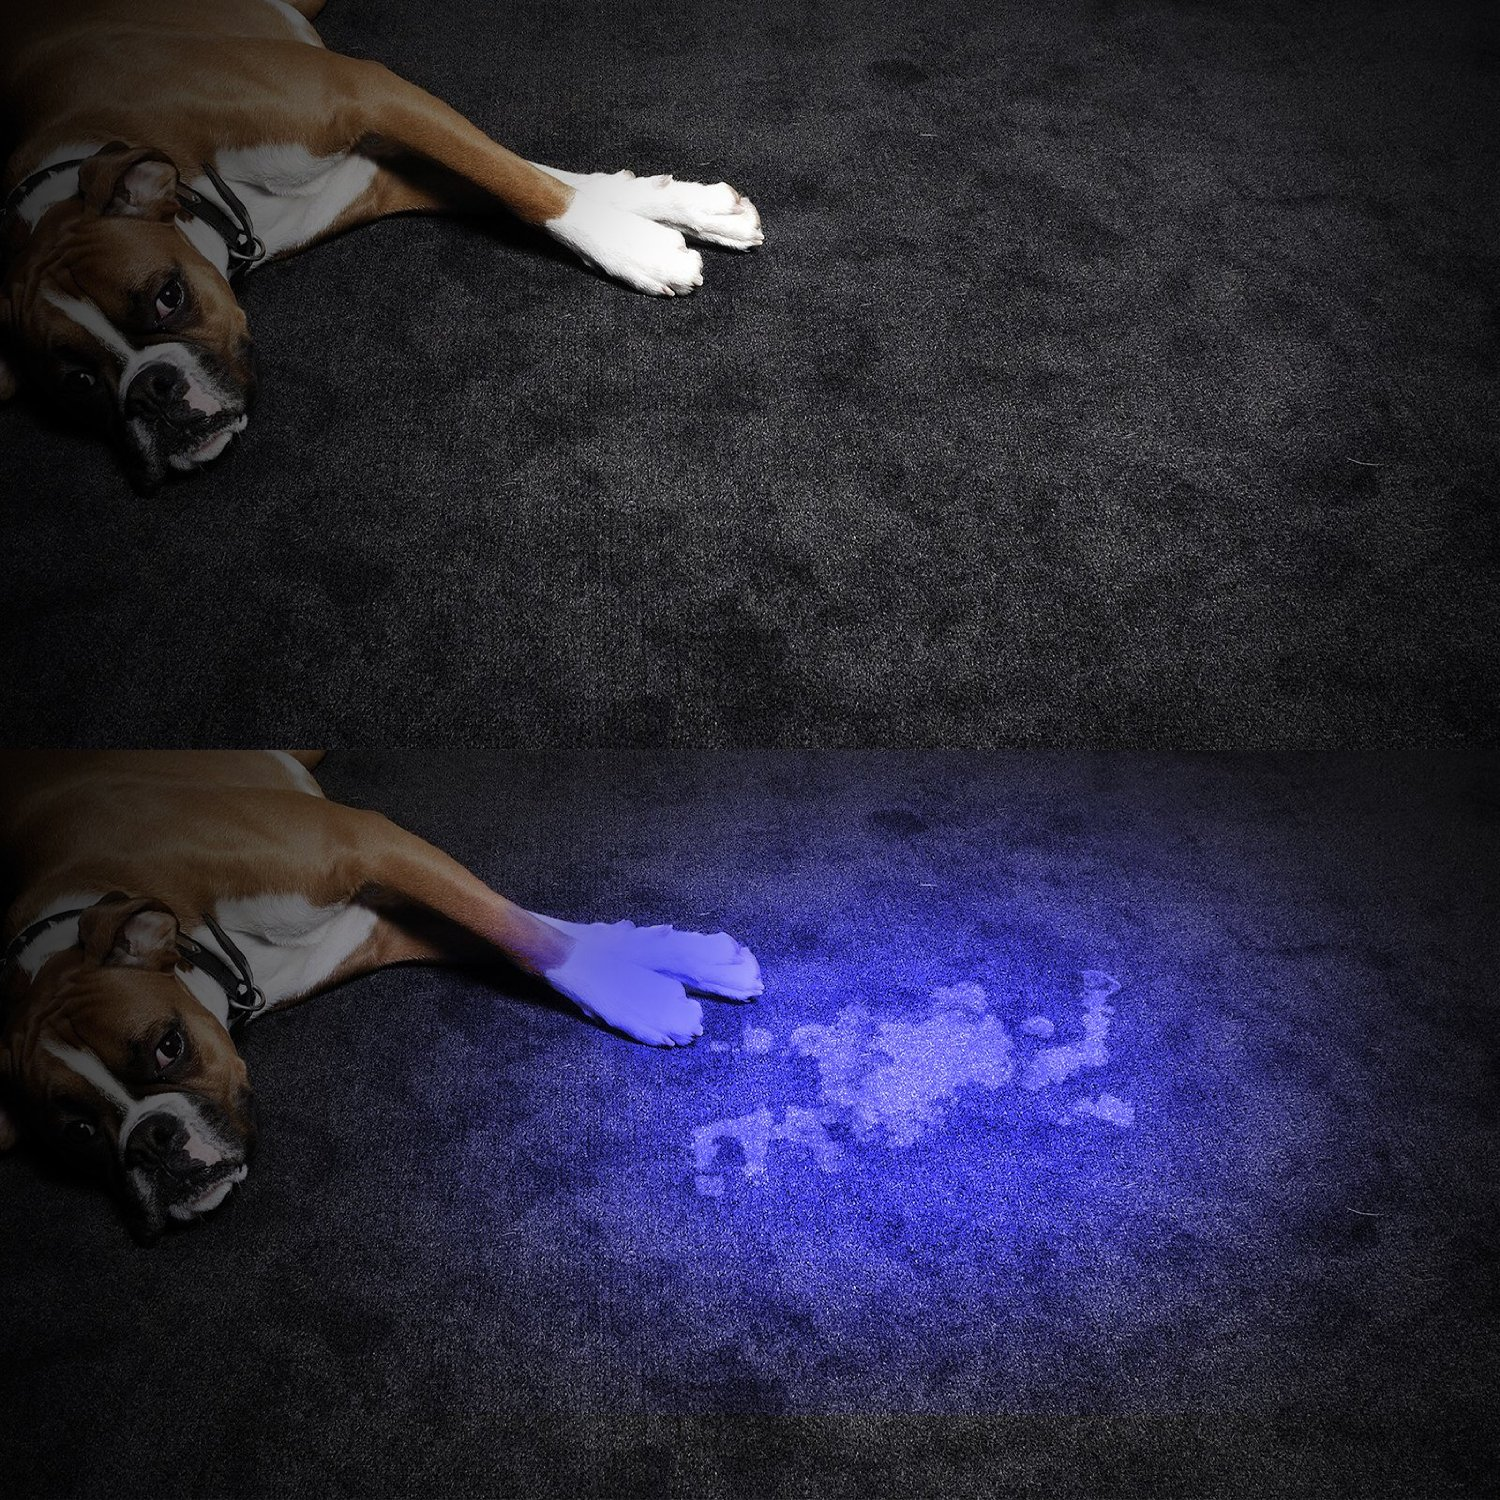 TaoTronics TT-FL001 Pets Urine and Stains Detector 12 Ultraviolet Led Flashlight with AAA Batteries